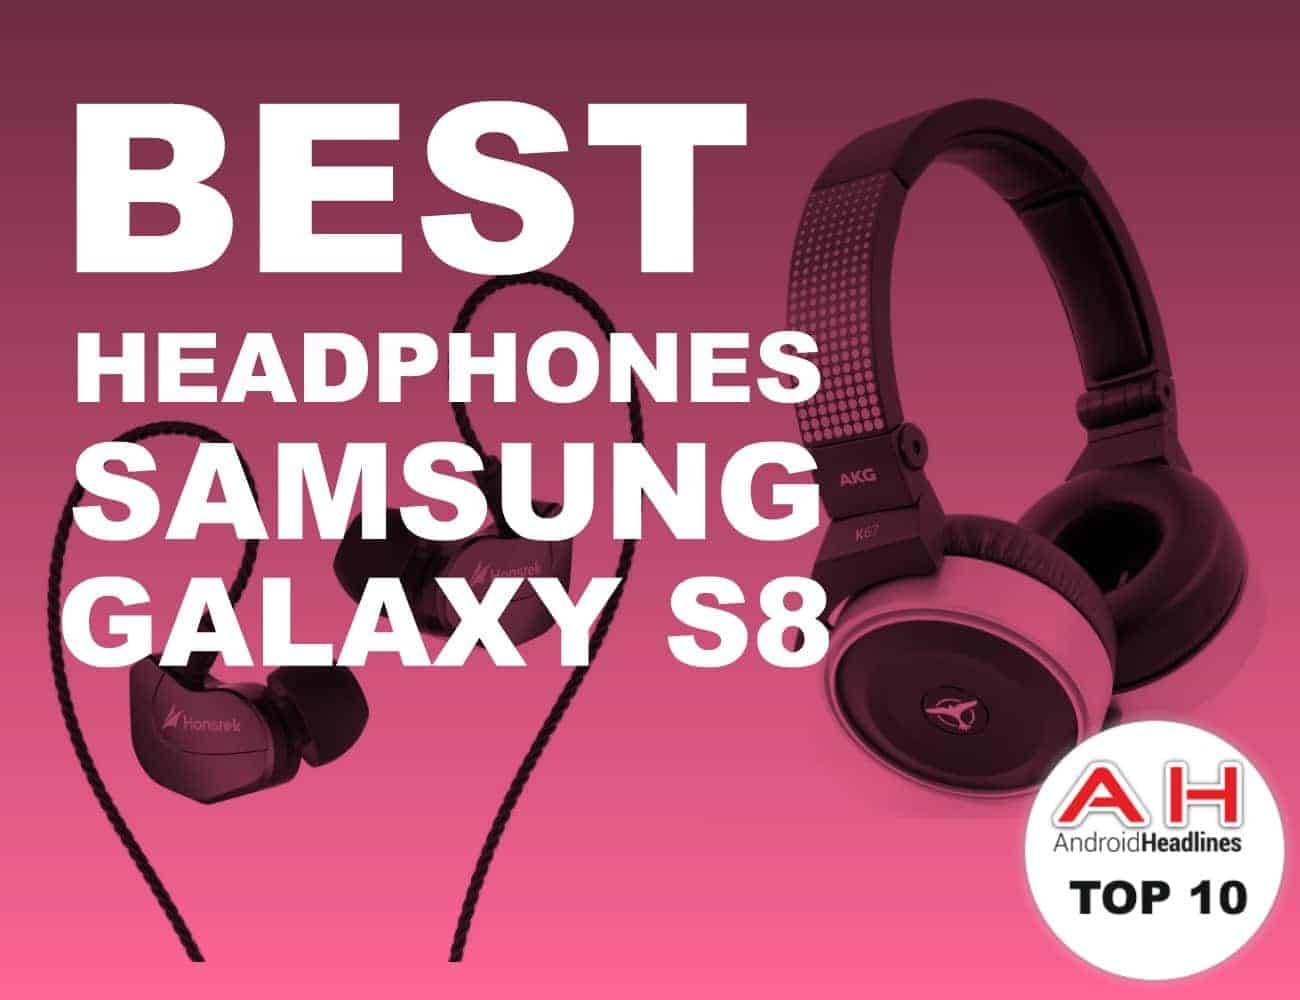 Best Headphones For Samsung Galaxy S8 April 2017